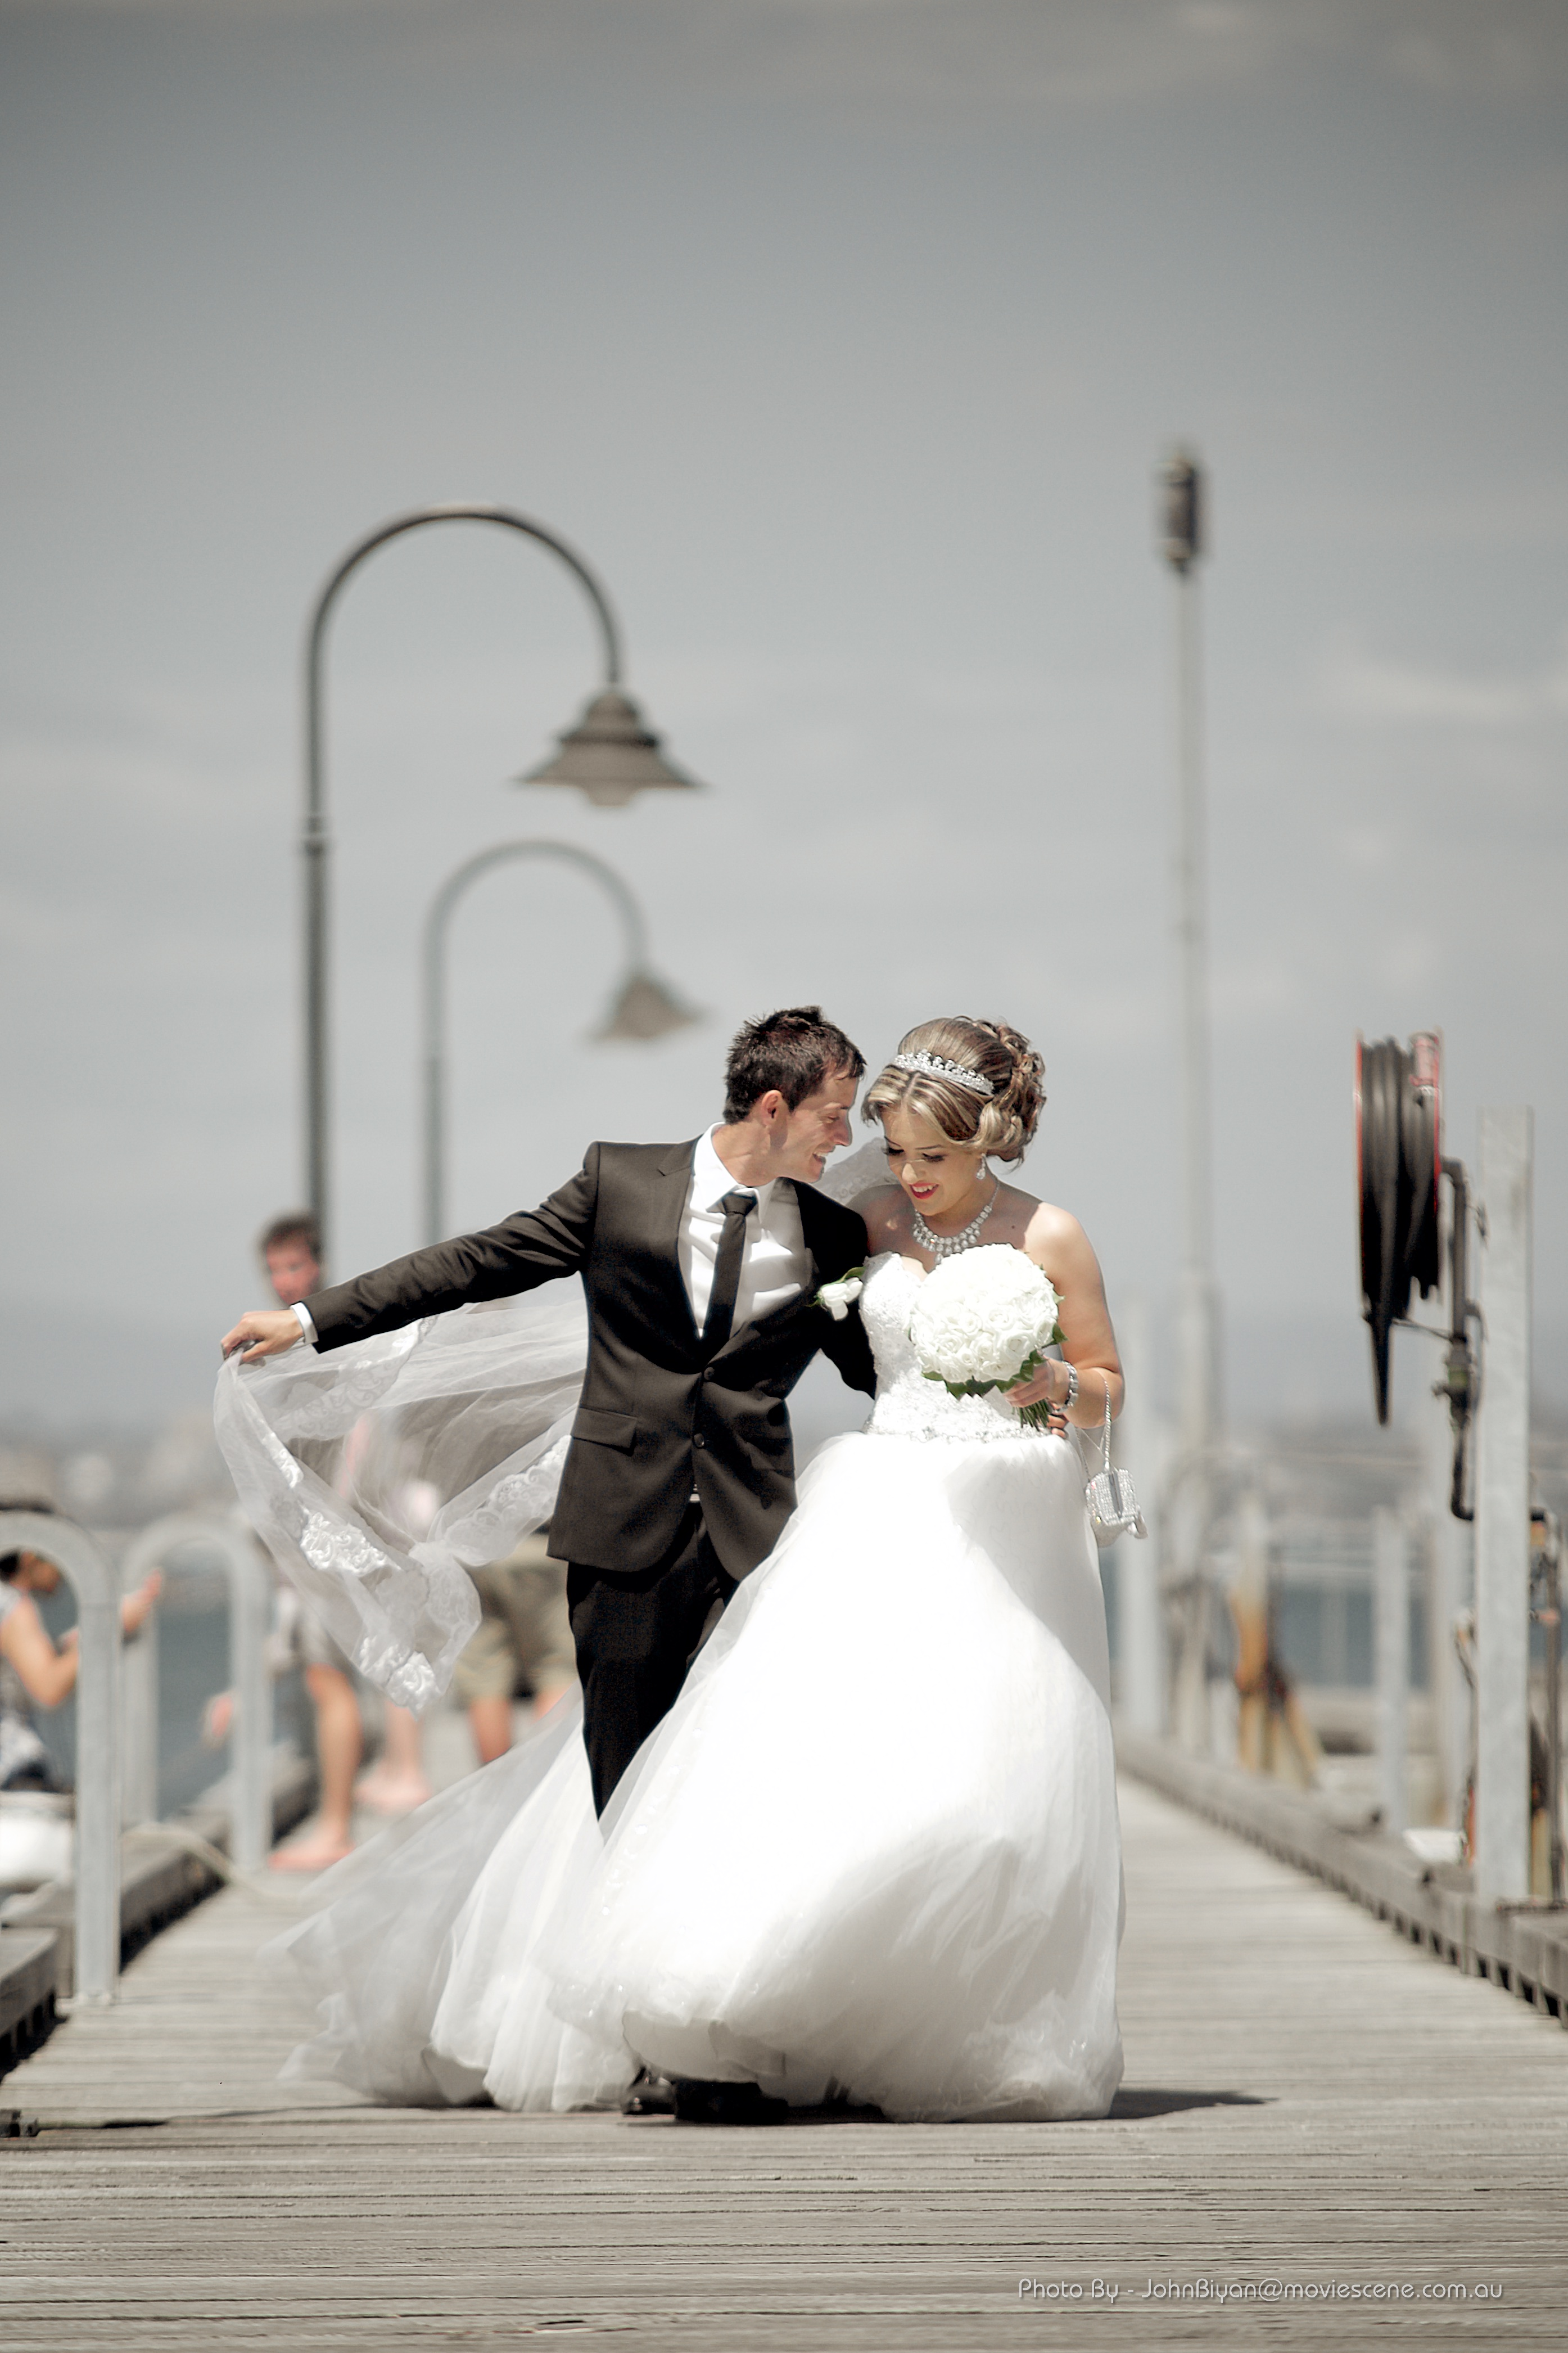 Wedding photo by John Biyan at Williamstown Melbourne Wedding Videography and Photography